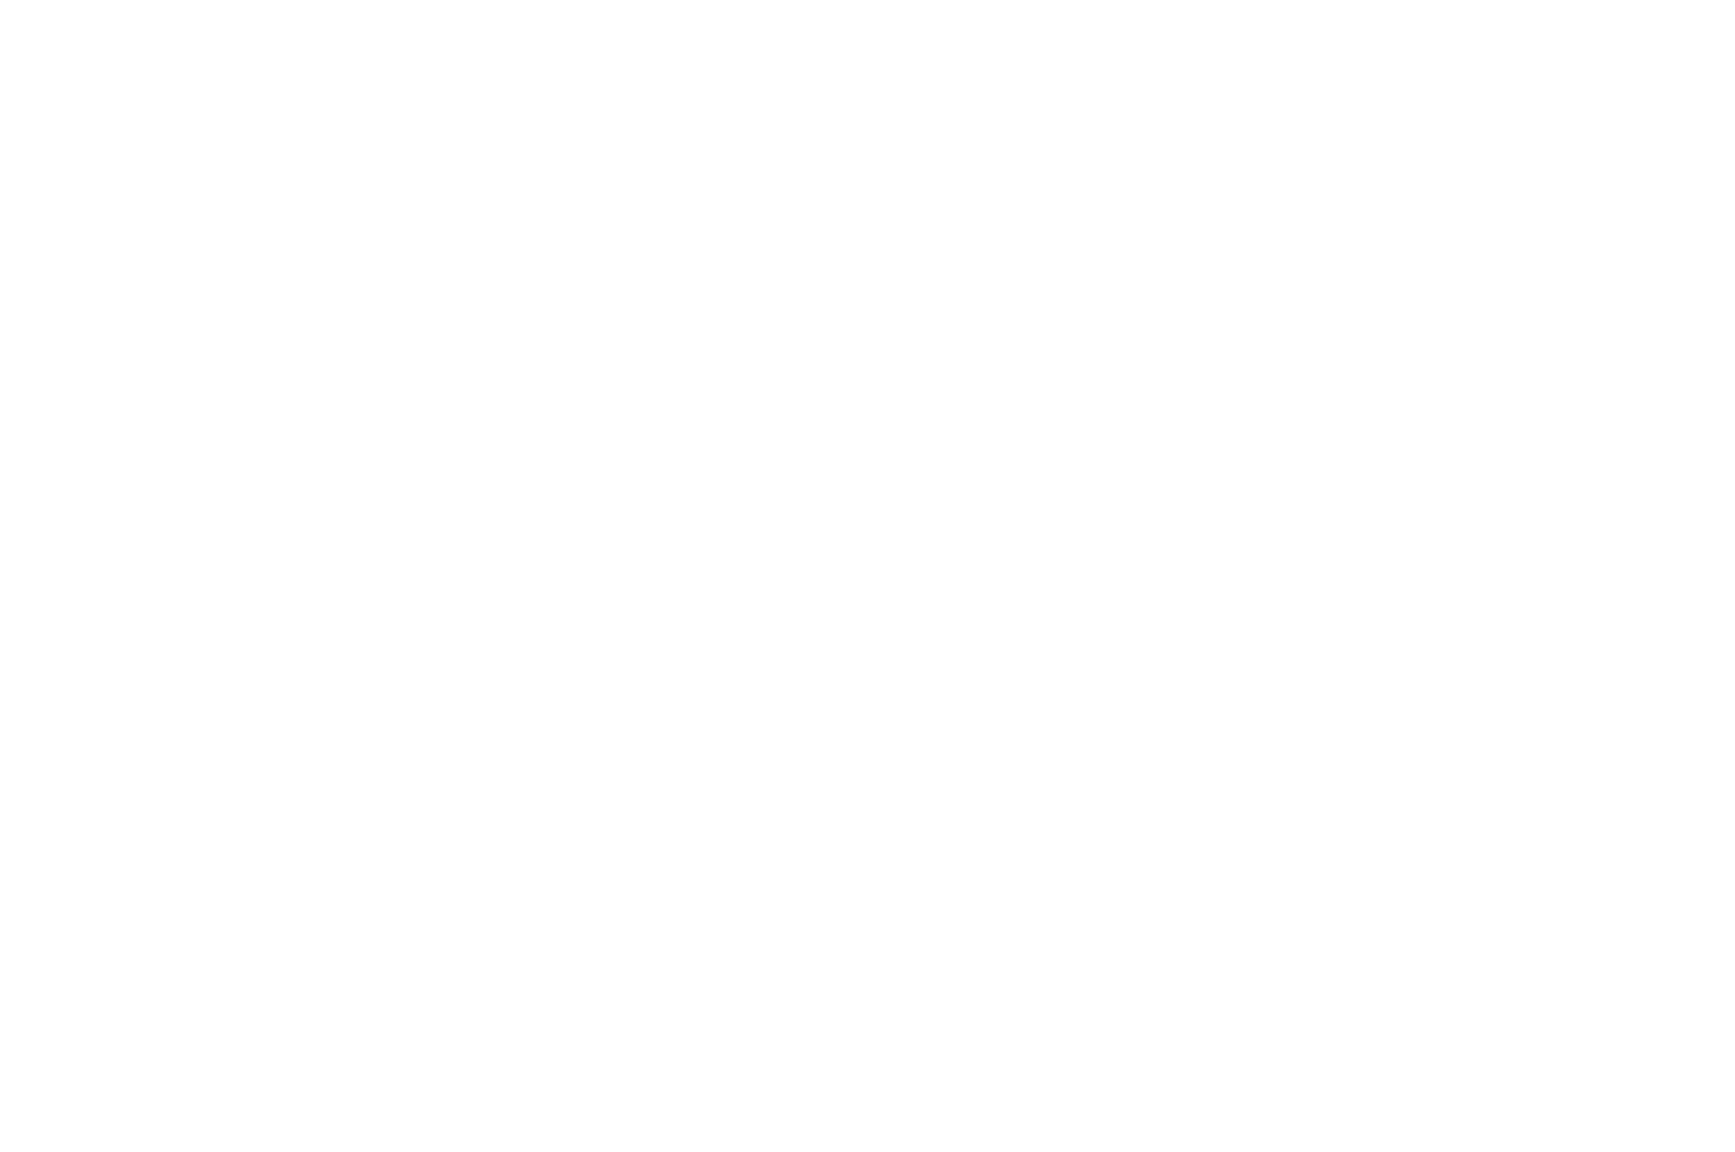 FINALIST - BLOW-UP  International Arthouse FILM FEST  Chicago - 2018 (1).png